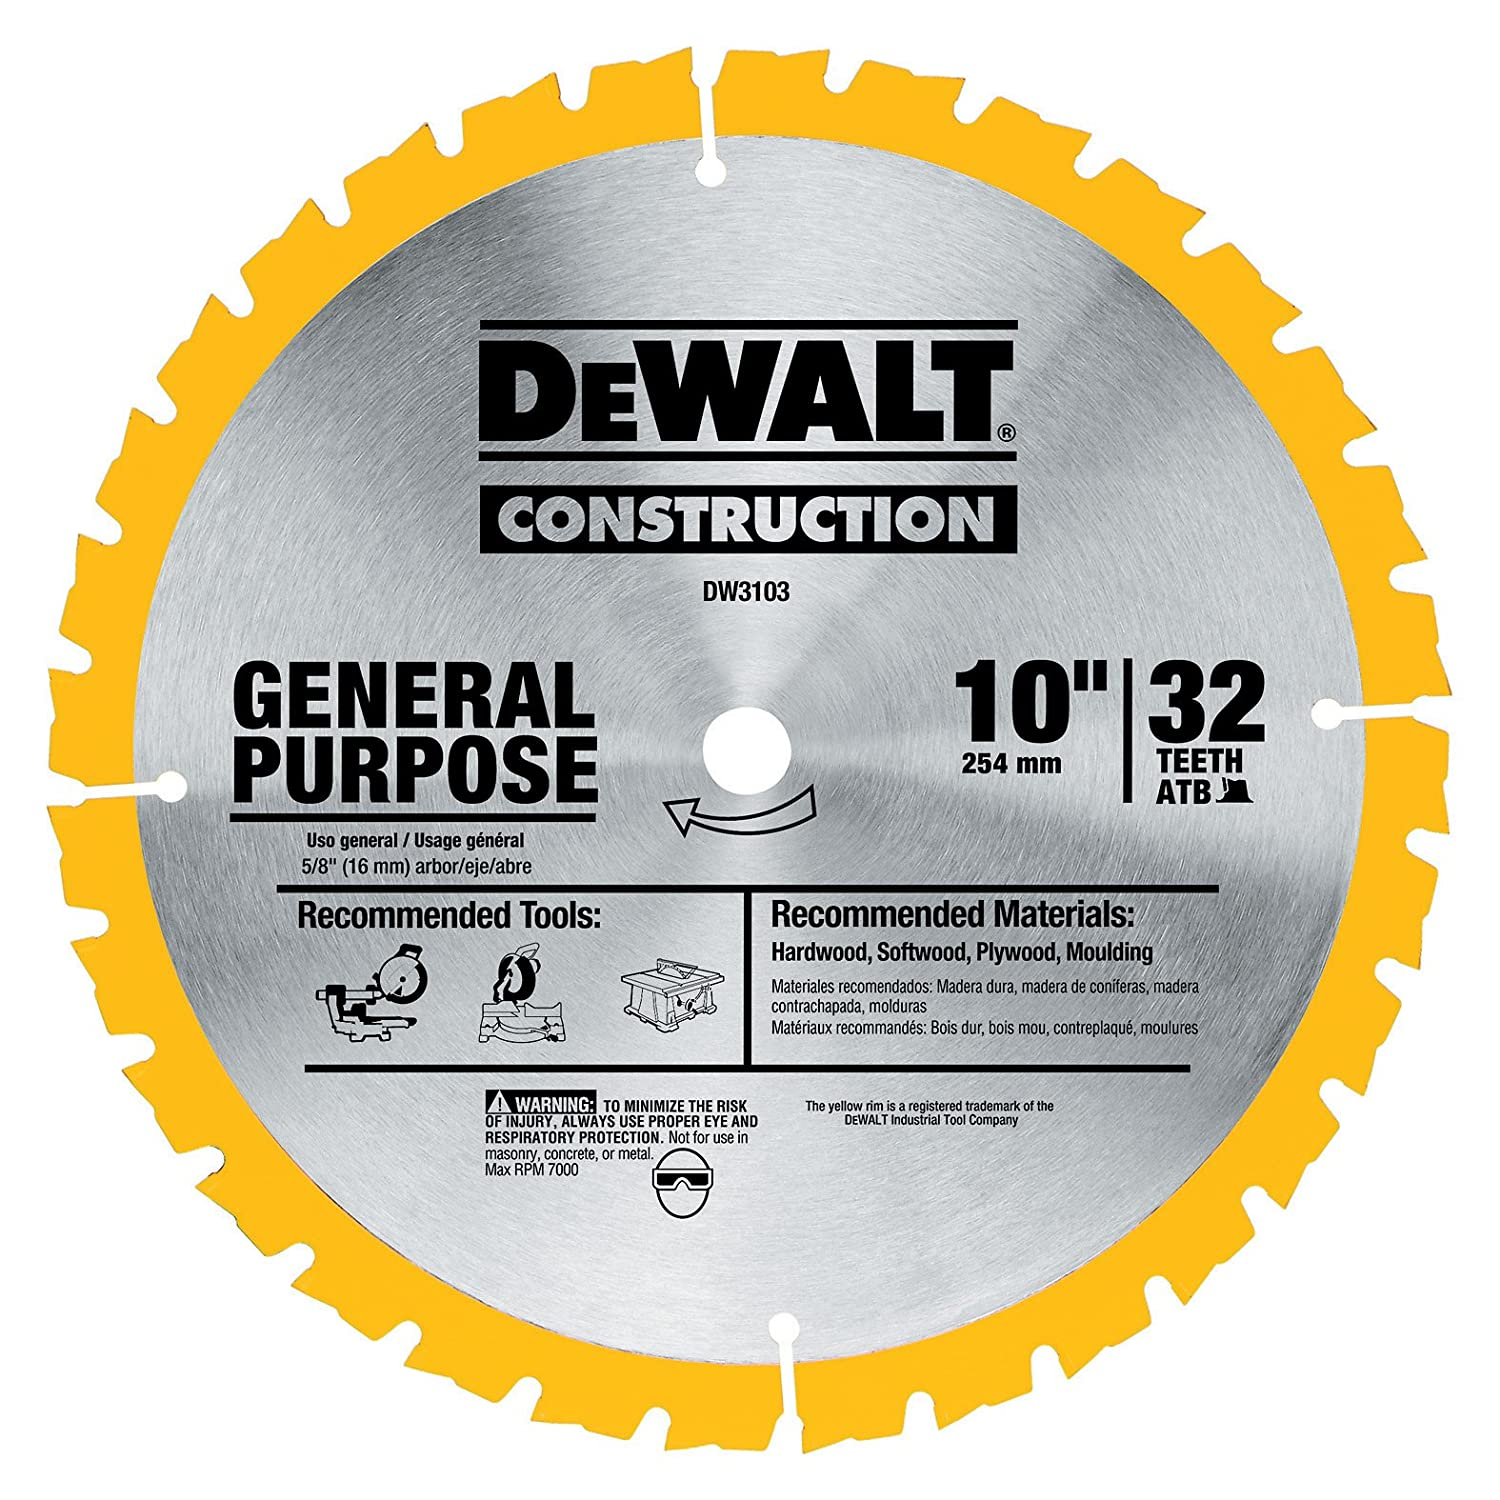 DEWALT DW3103 Series 20 10-Inch 32 Tooth ATB Thin Kerf General Purpose Saw Blade with 5/8-Inch Arbor